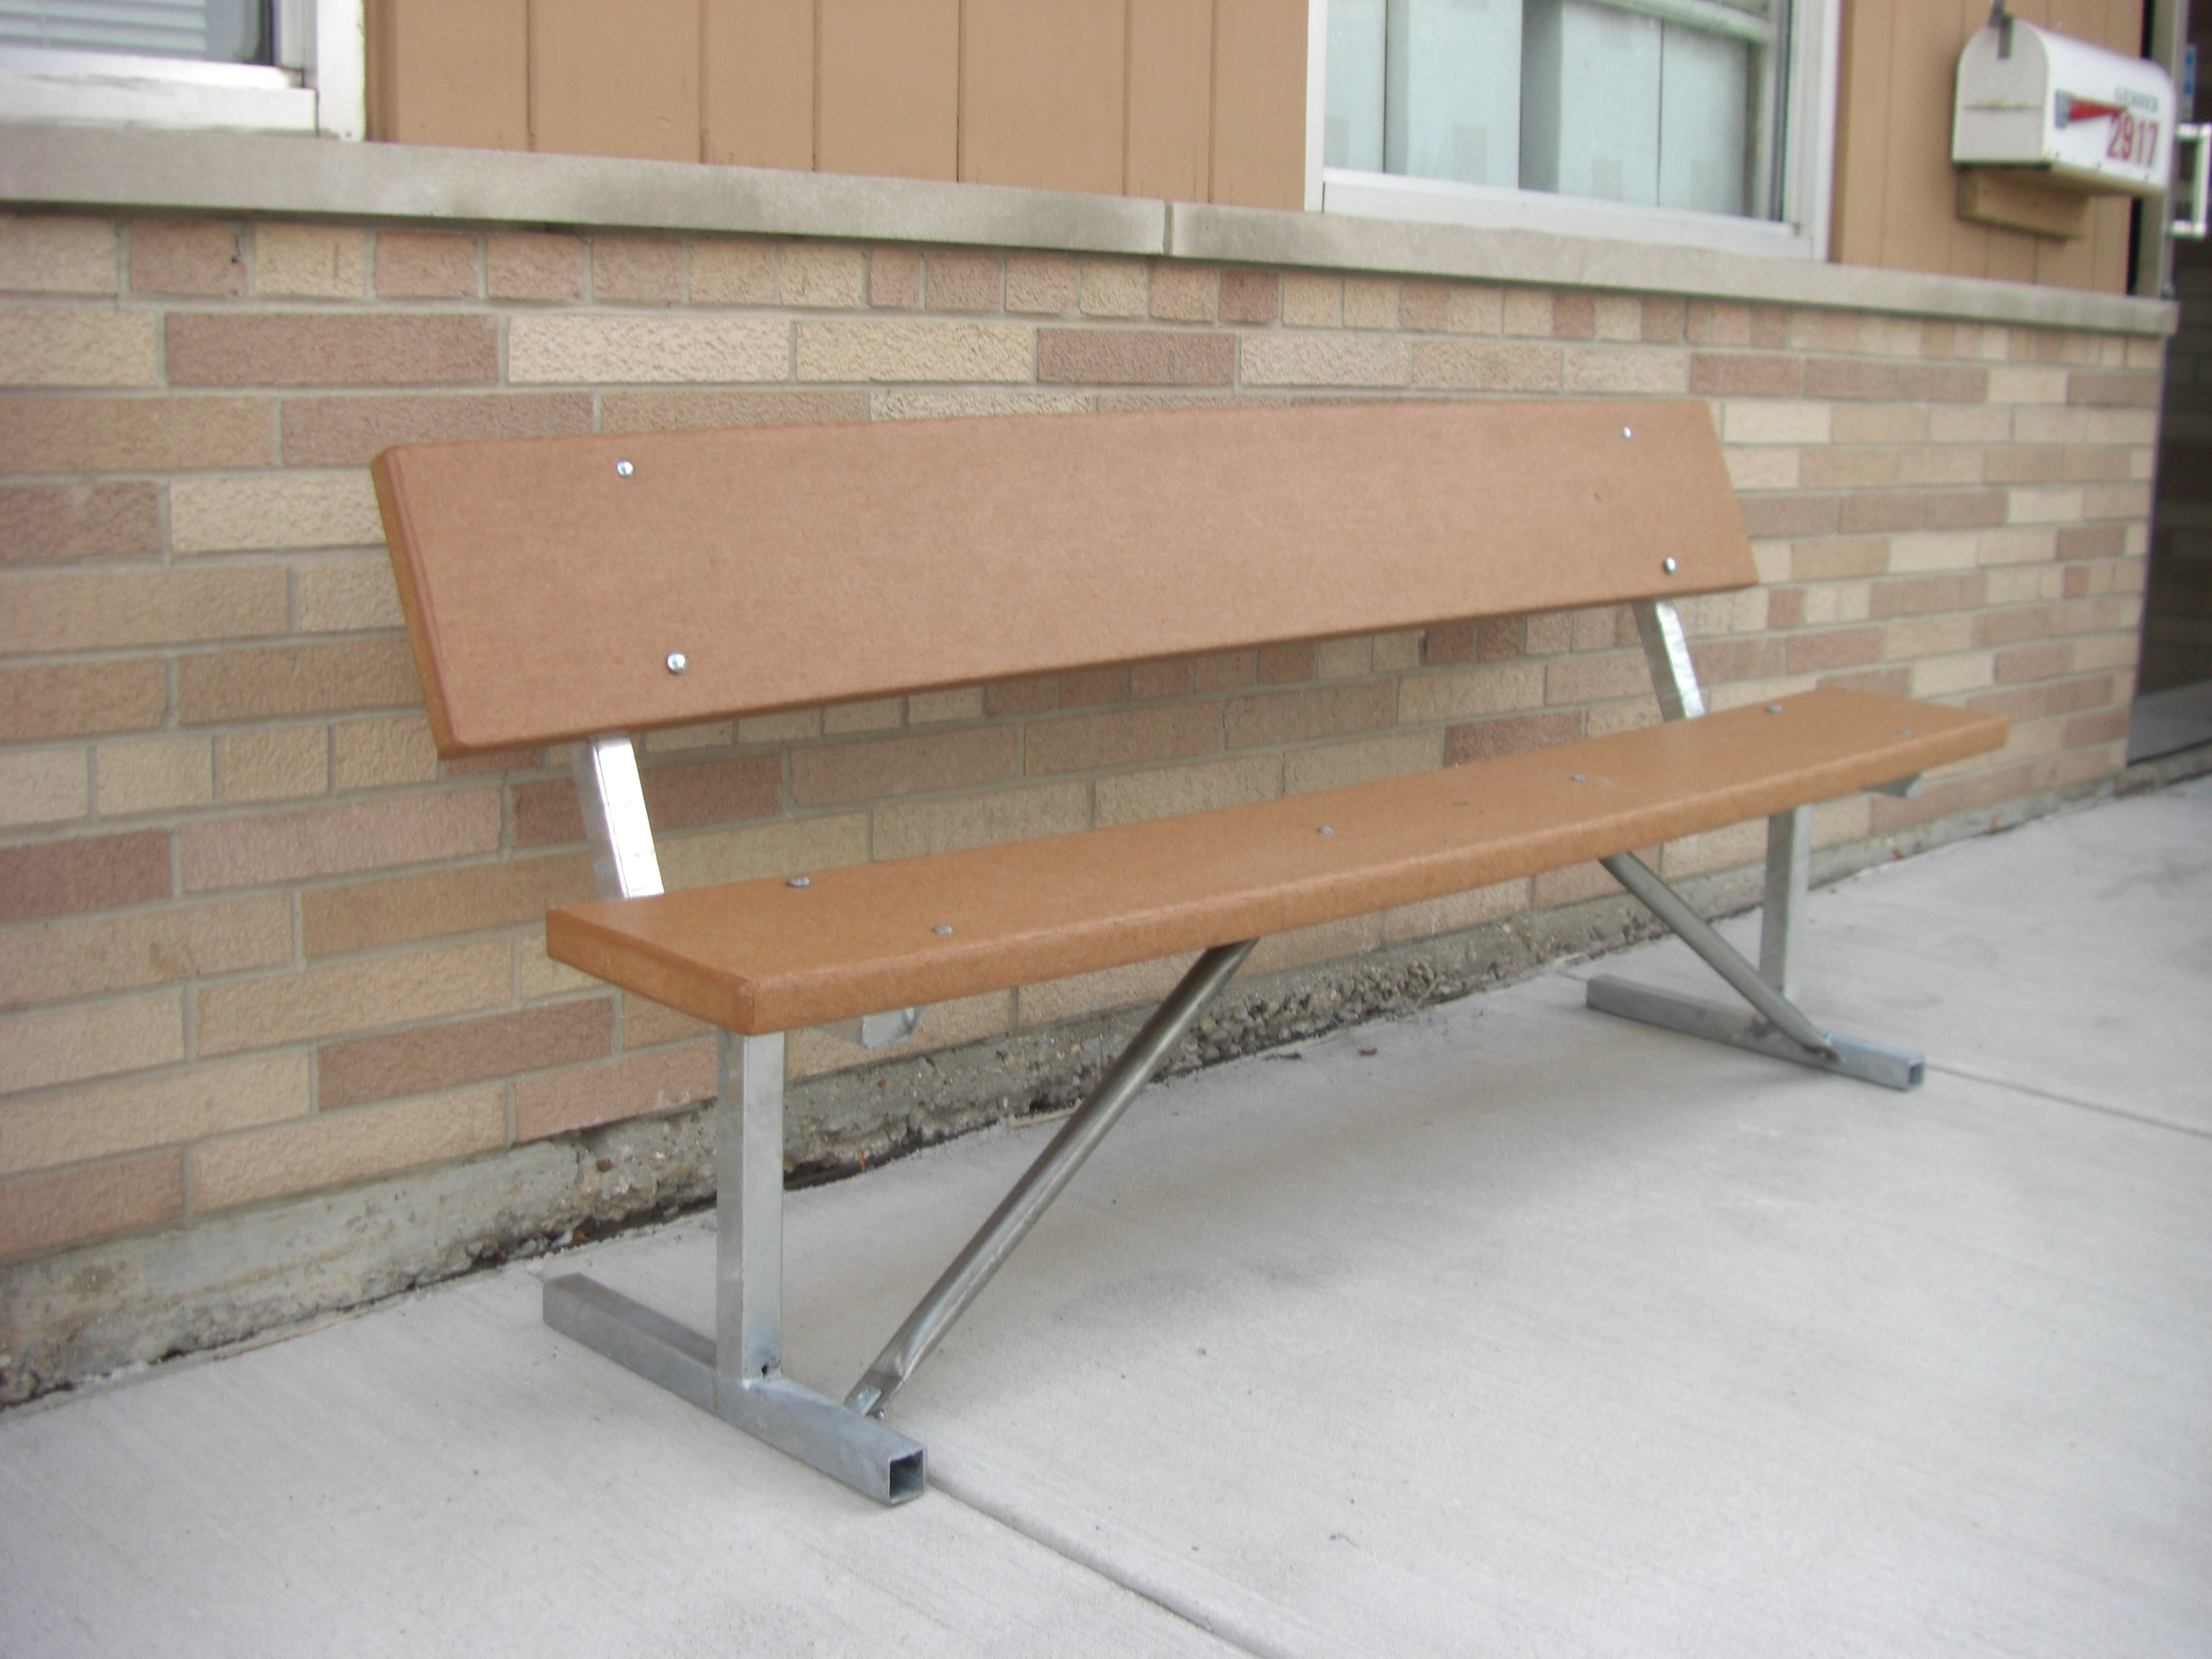 Portable Standard Park Bench - RECYCLED PLASTIC Lumber